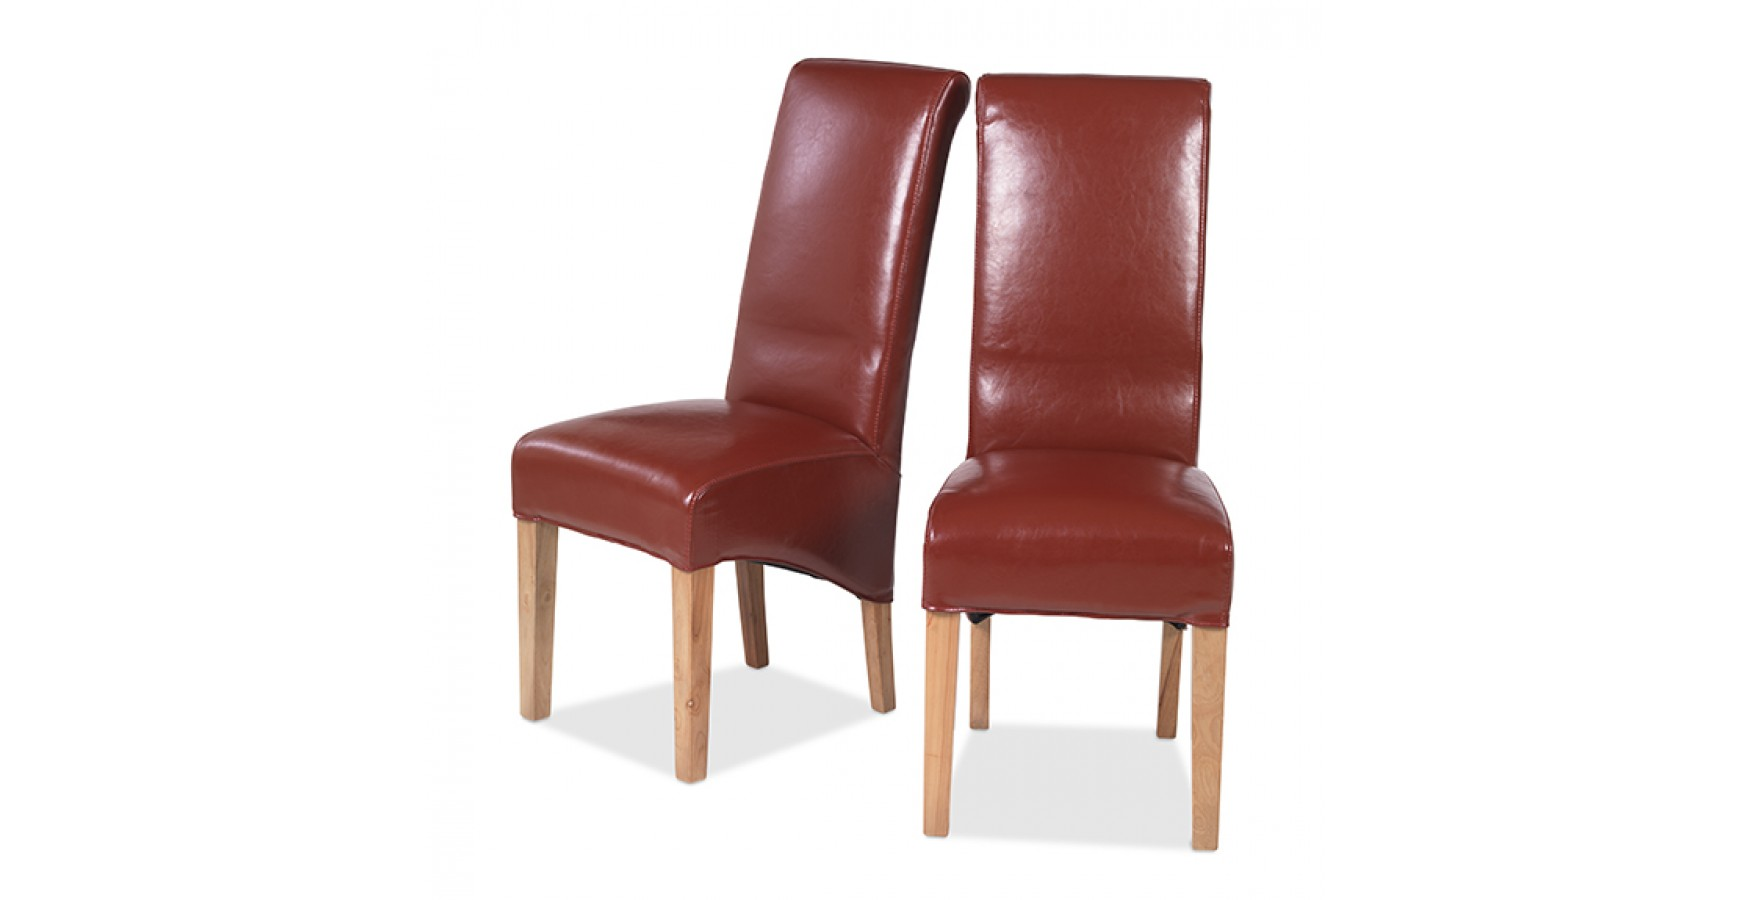 Cuba Oak Bonded Leather Dining Chairs Red Pair Lifestyle - Leather dining chairs uk